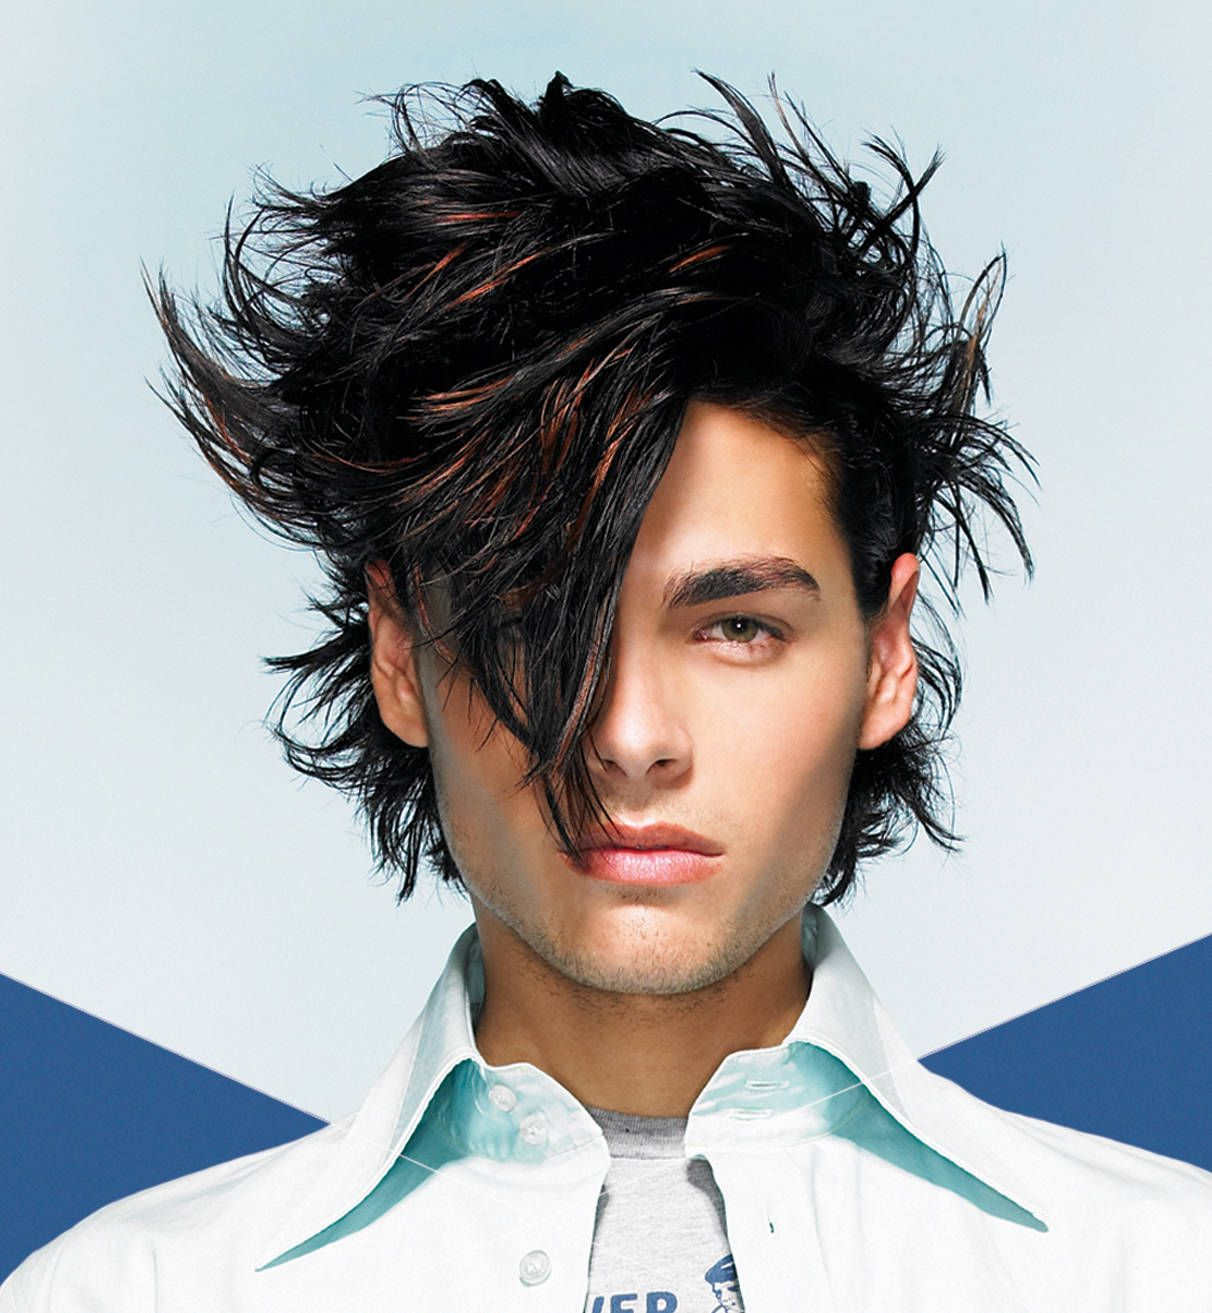 men's hairstyles - picture gallery of wild and extreme men's